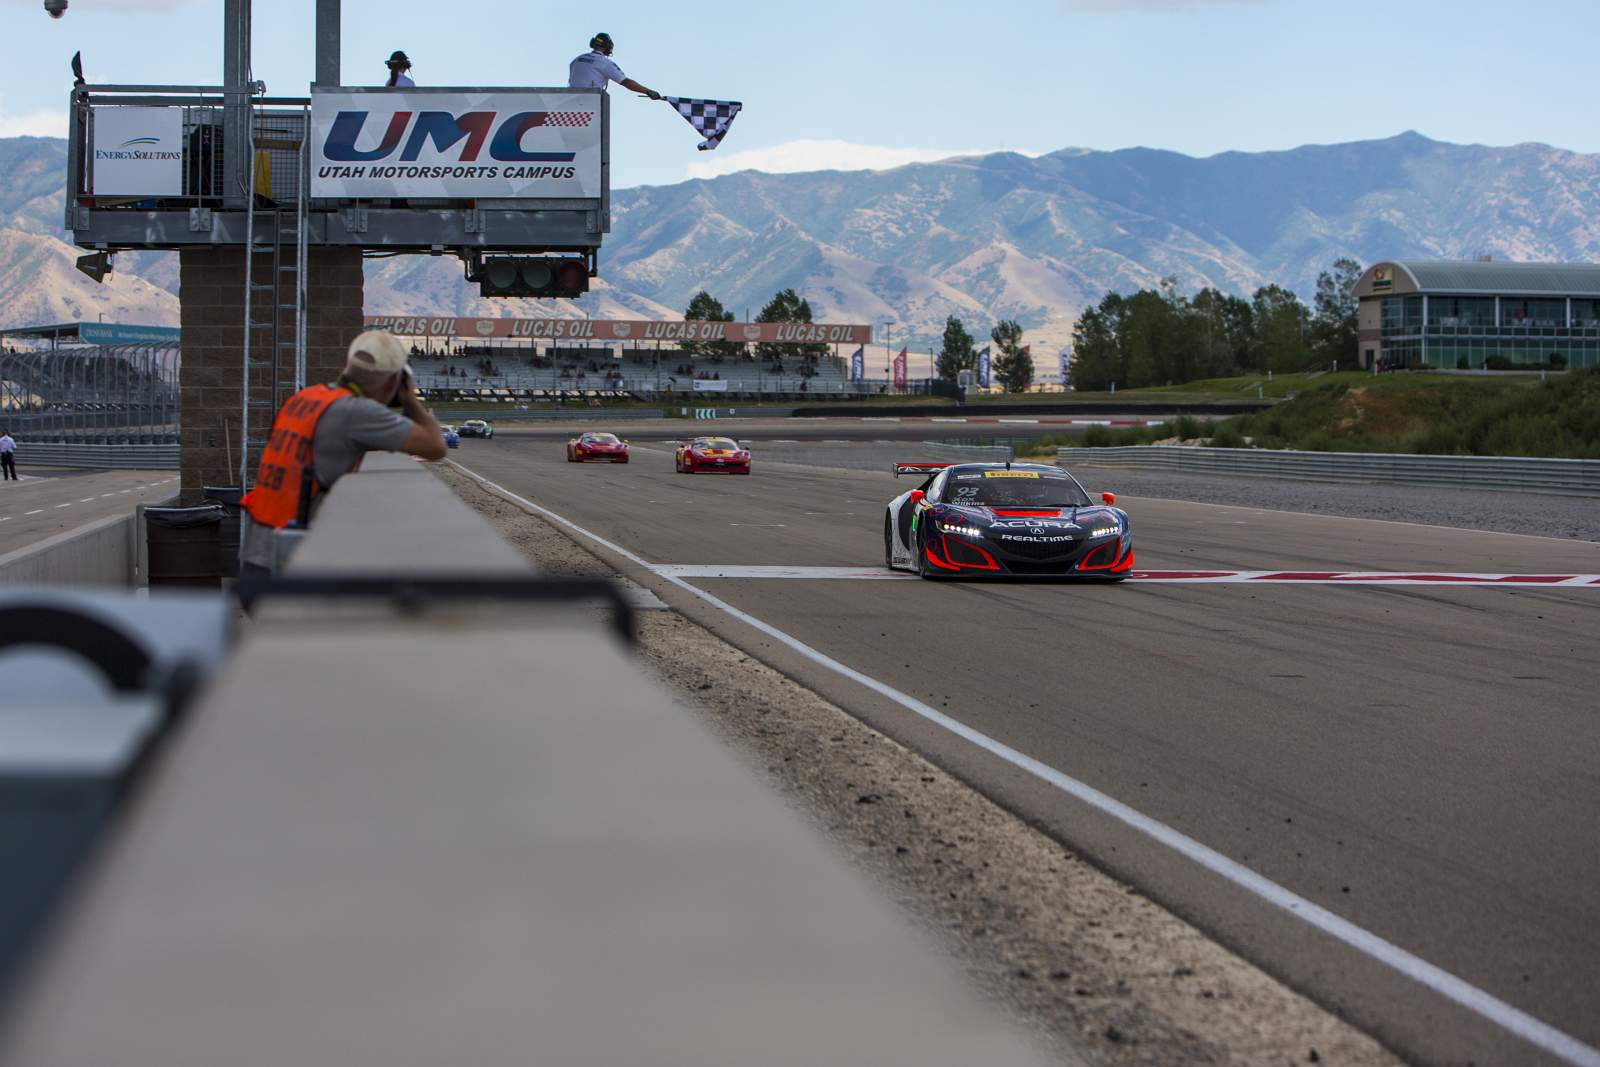 peter-kox-realtime-racing-pirelli-world-challenge-utah-motorsport-campus--213